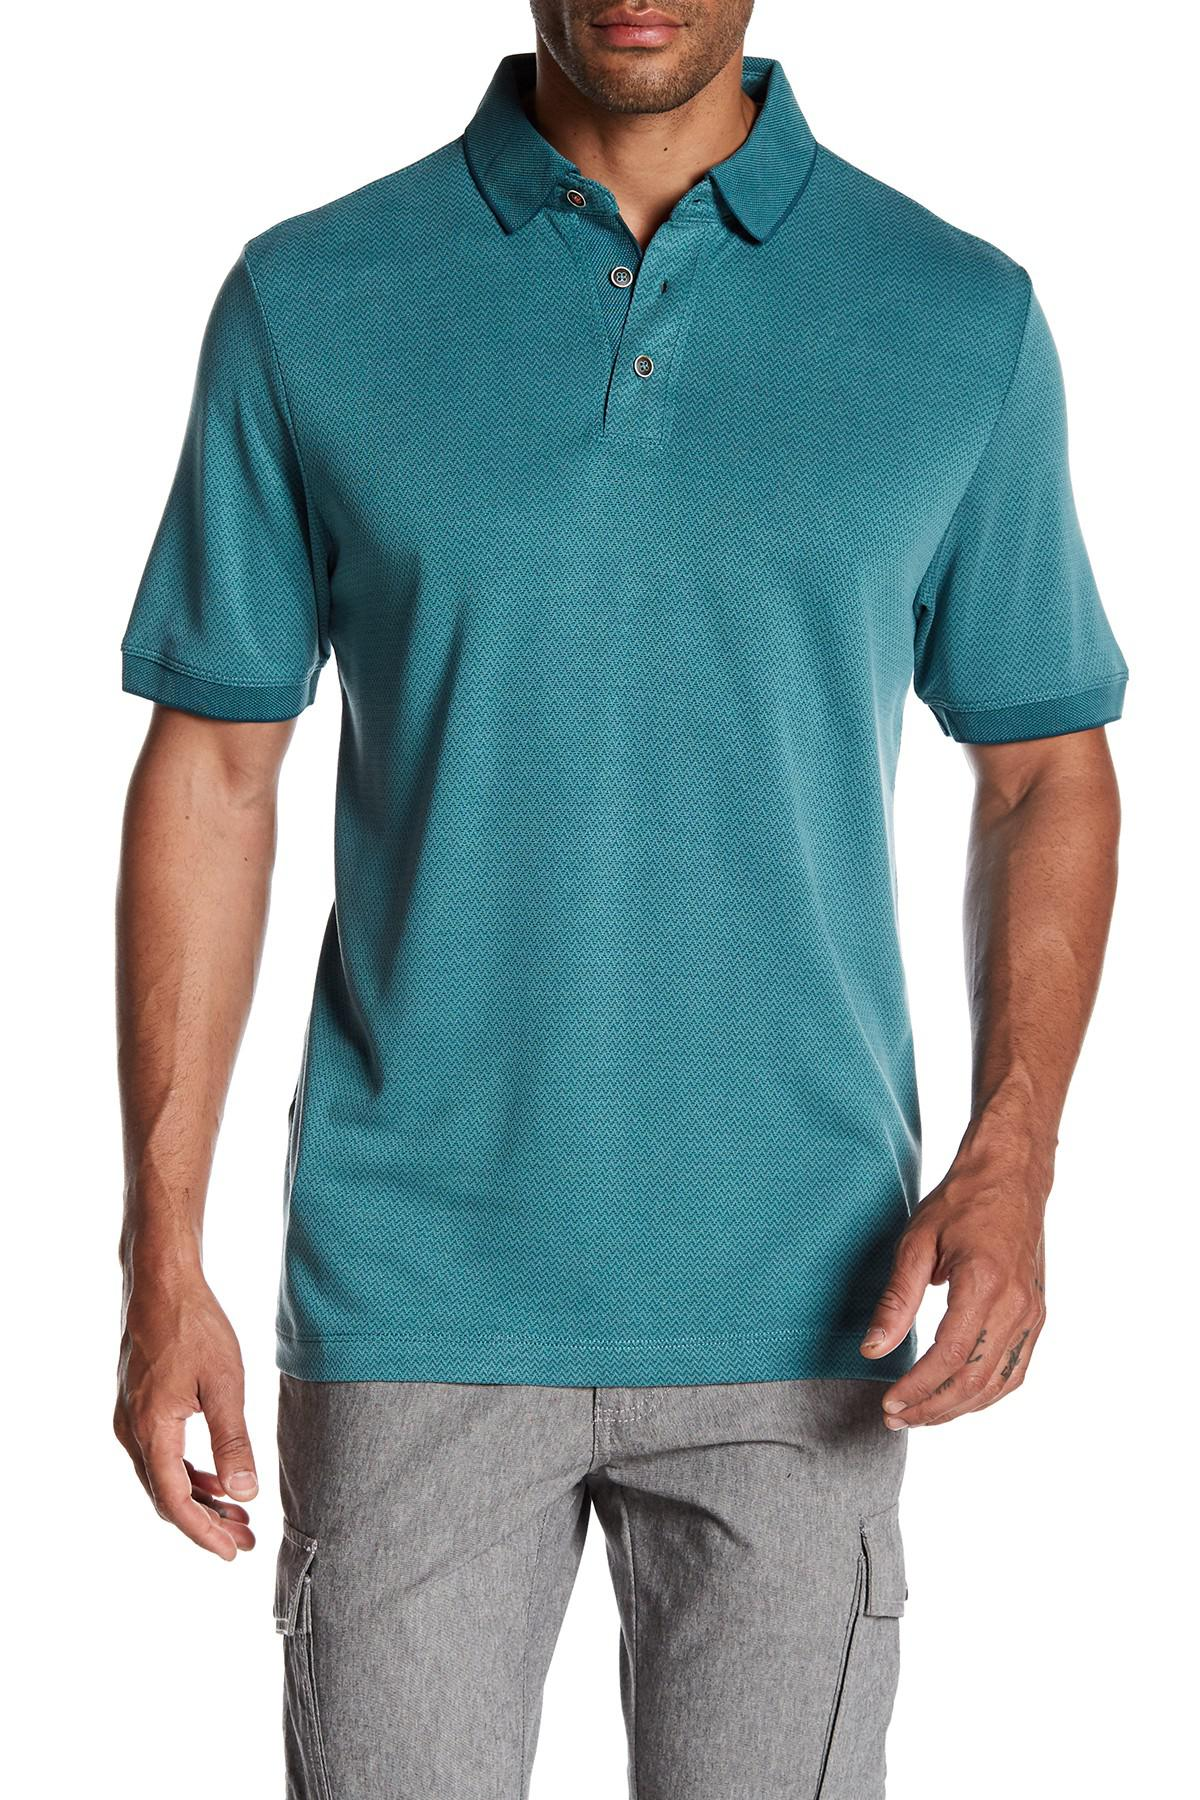 Tommy bahama paradise breeze polo shirt in blue for men lyst for Tommy bahama polo shirts on sale